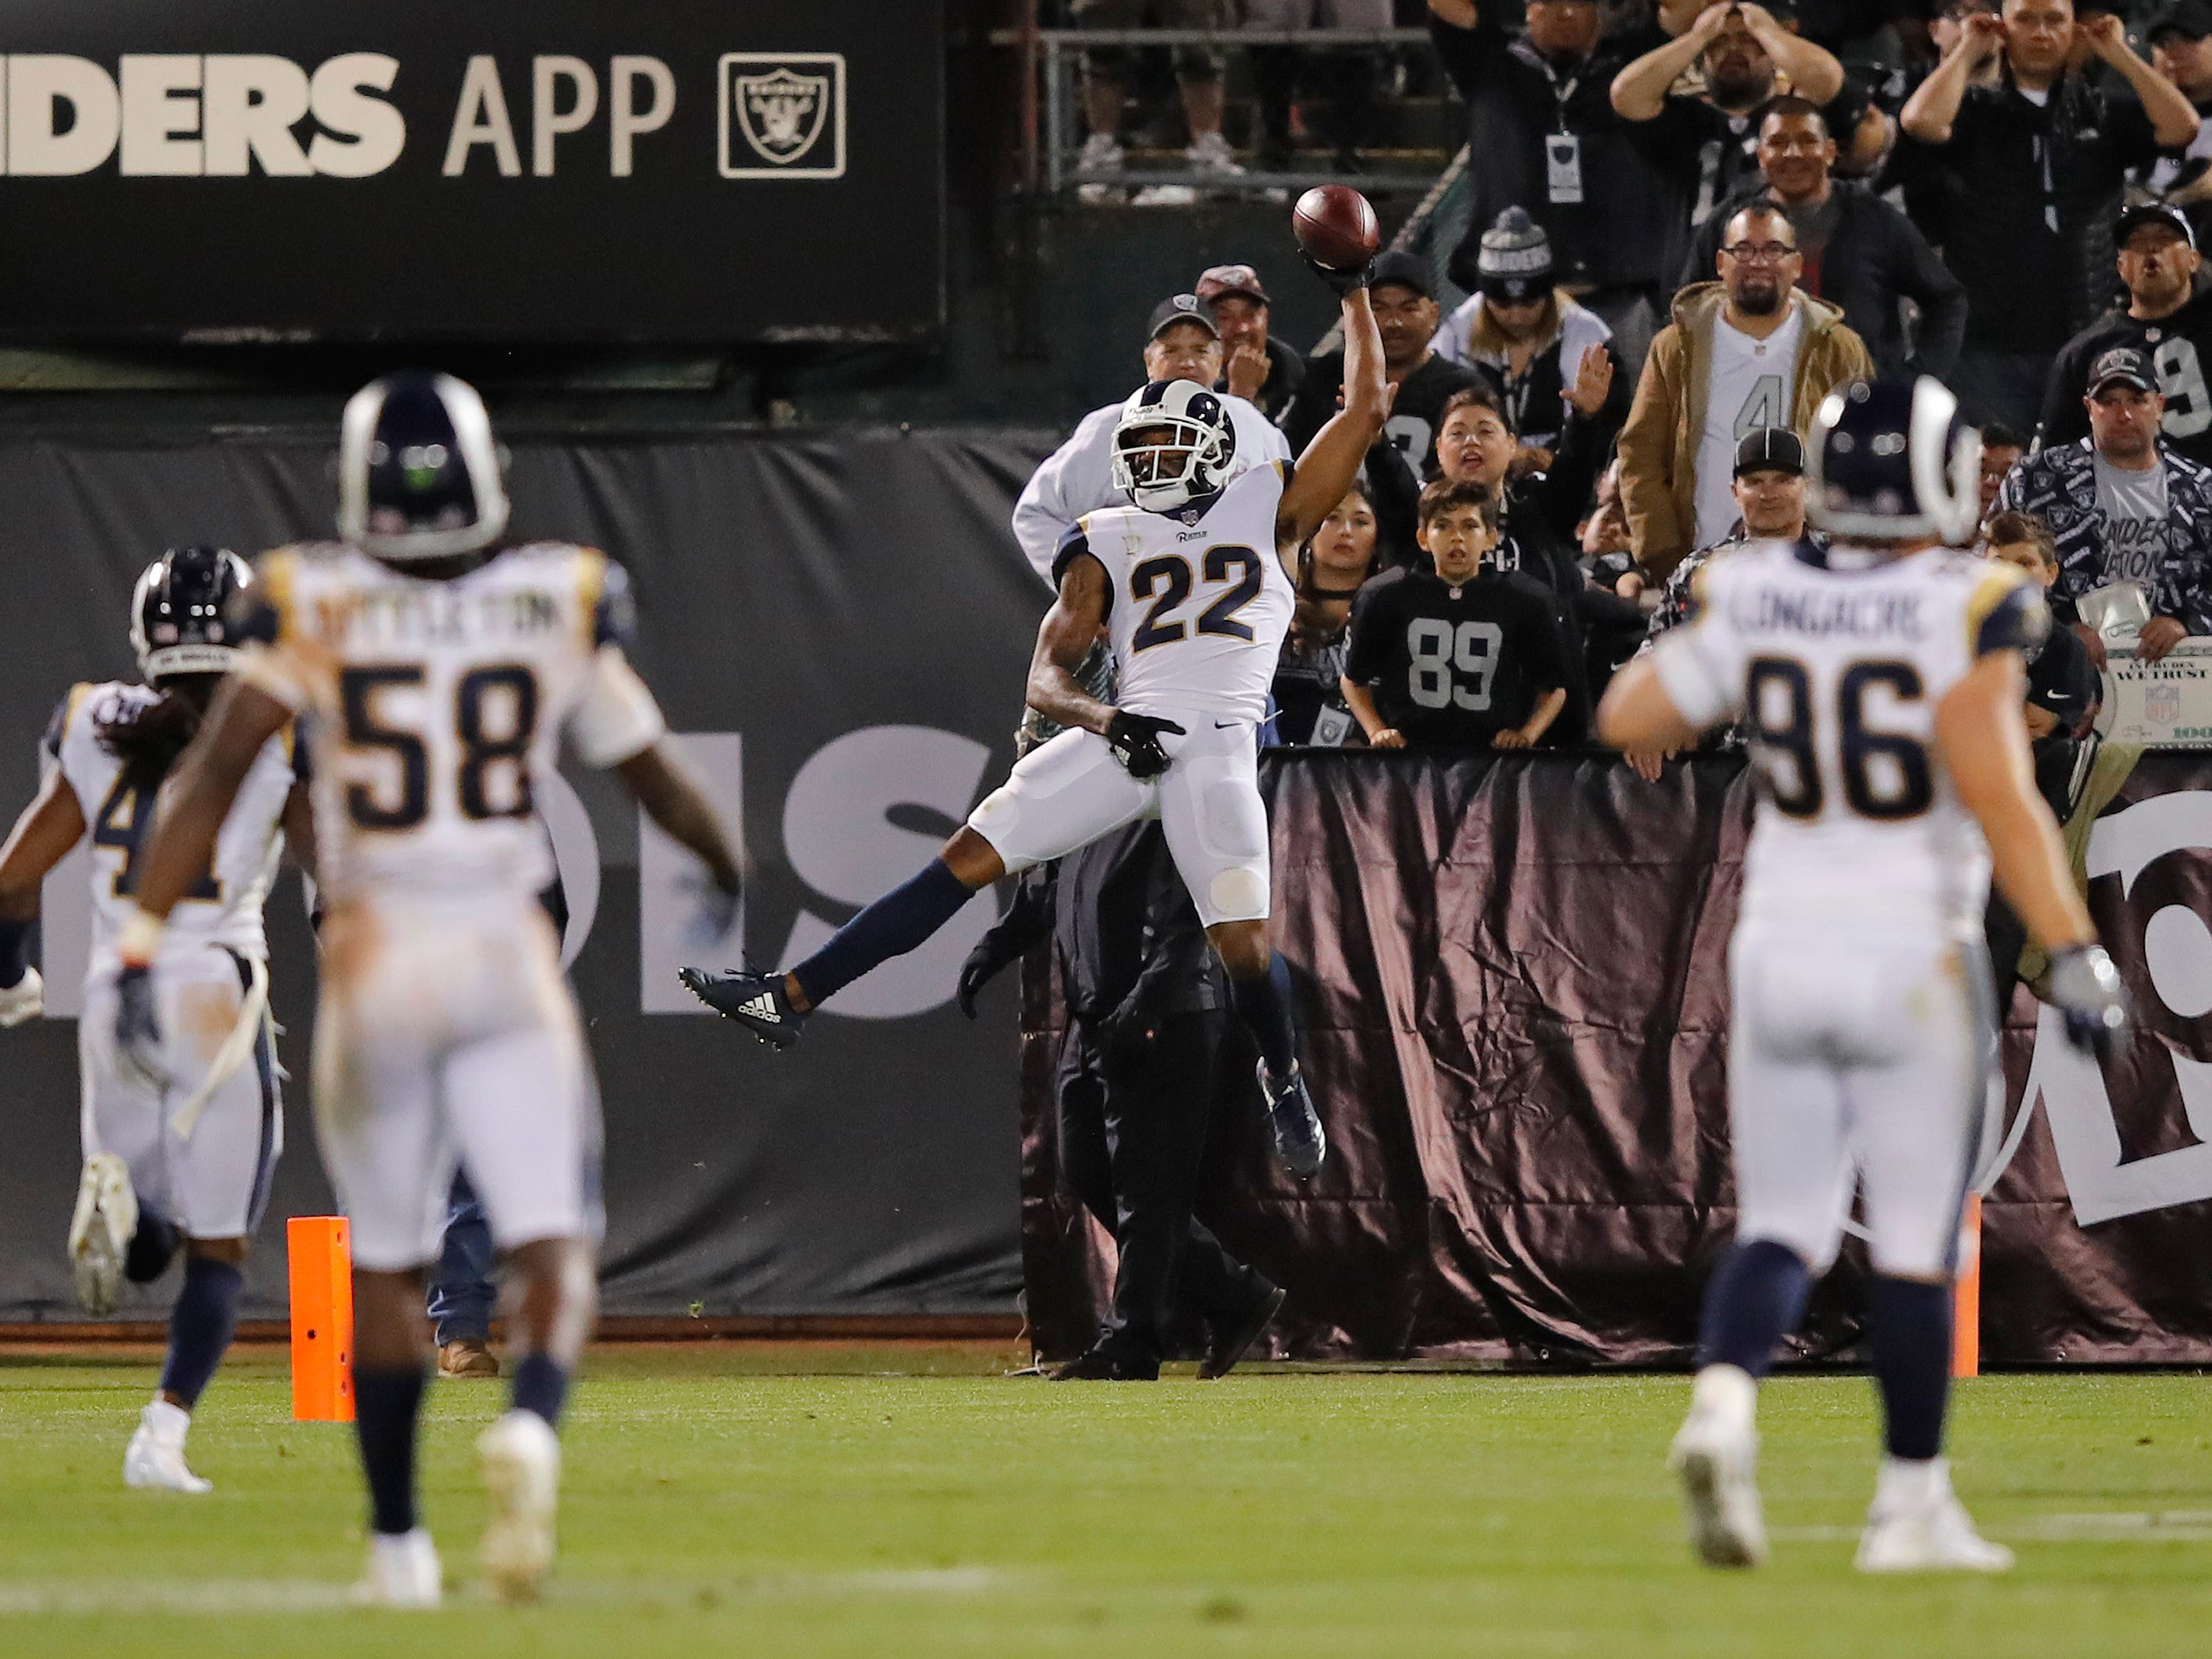 Los Angeles Rams cornerback Marcus Peters celebrates in the end zone after  a 50-yard interception for a touchdown against the Oakland Raiders.